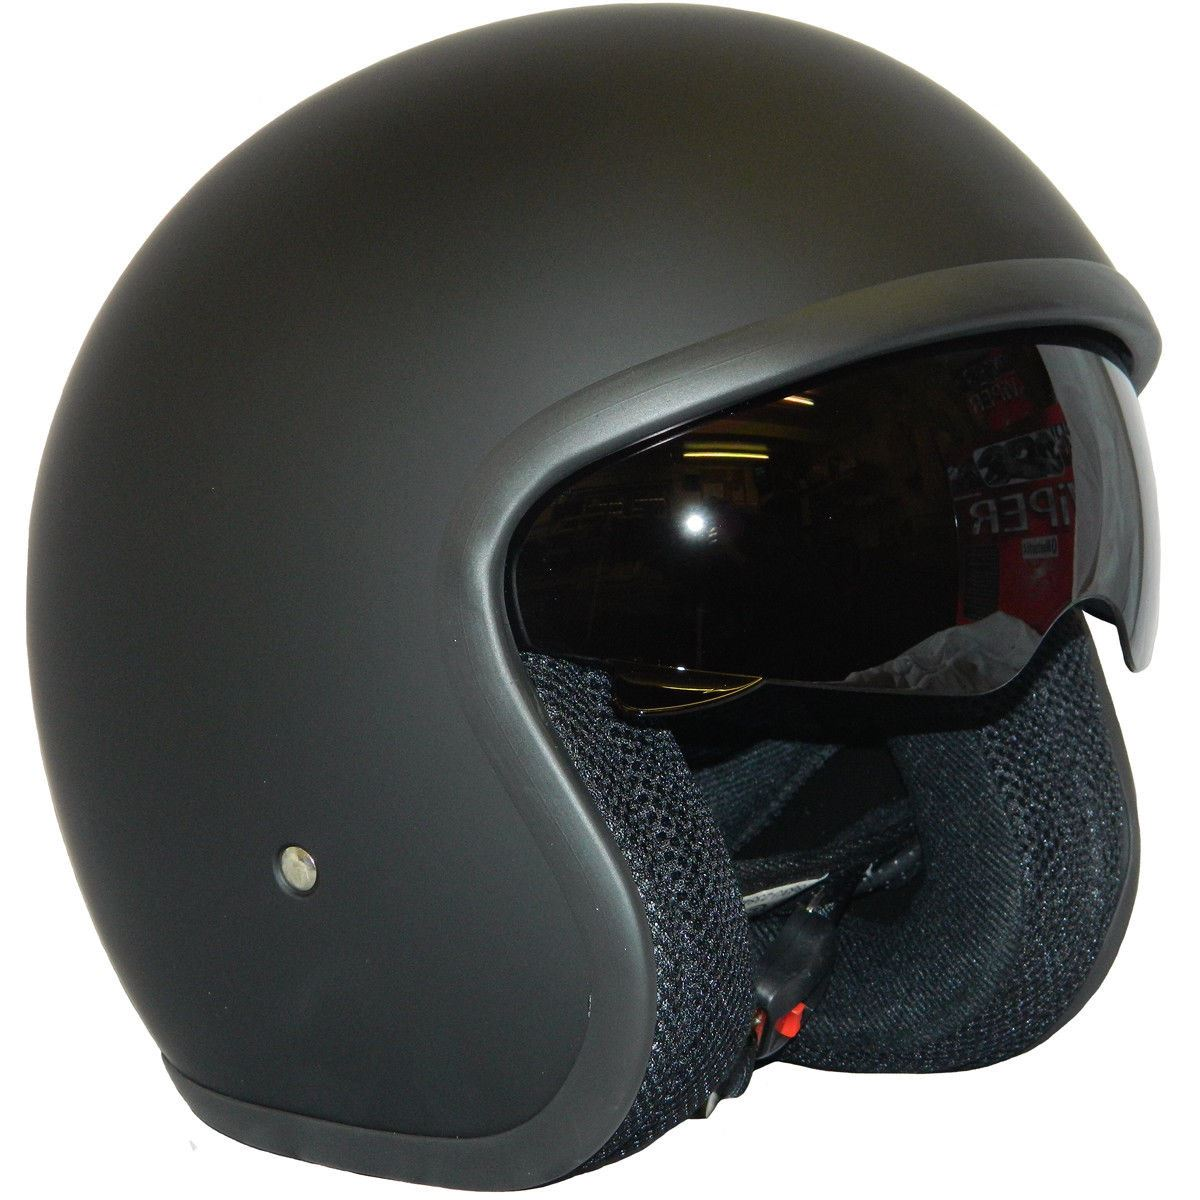 casque r tro moto mat scooter ouvert visiere pare soleil viper rs v06 ebay. Black Bedroom Furniture Sets. Home Design Ideas